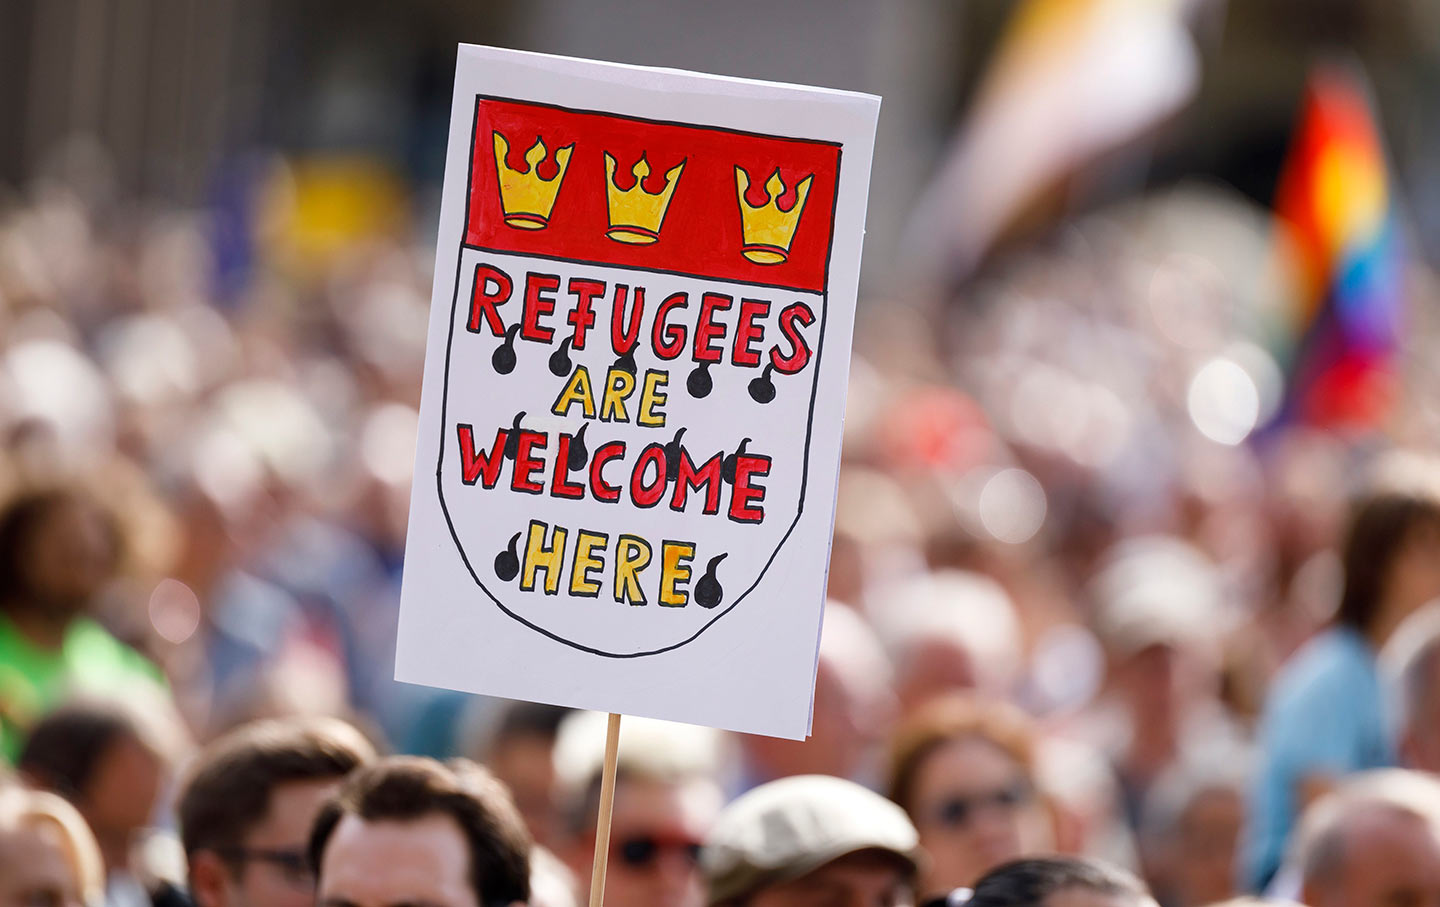 Refugees welcome in Germany sign